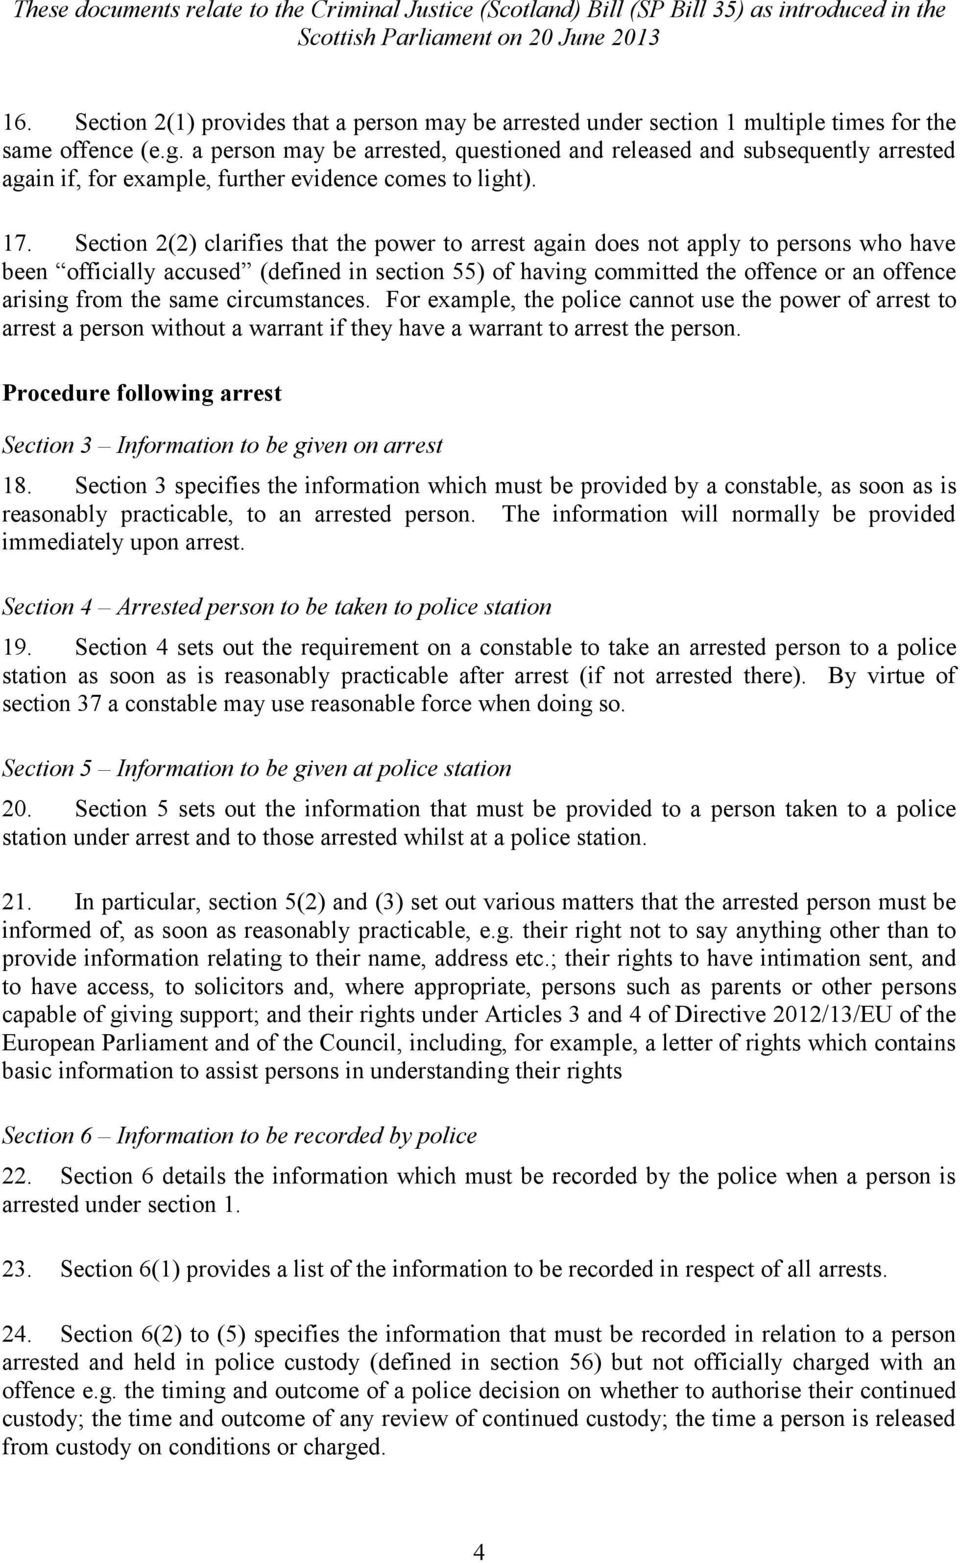 Section 2(2) clarifies that the power to arrest again does not apply to persons who have been officially accused (defined in section 55) of having committed the offence or an offence arising from the